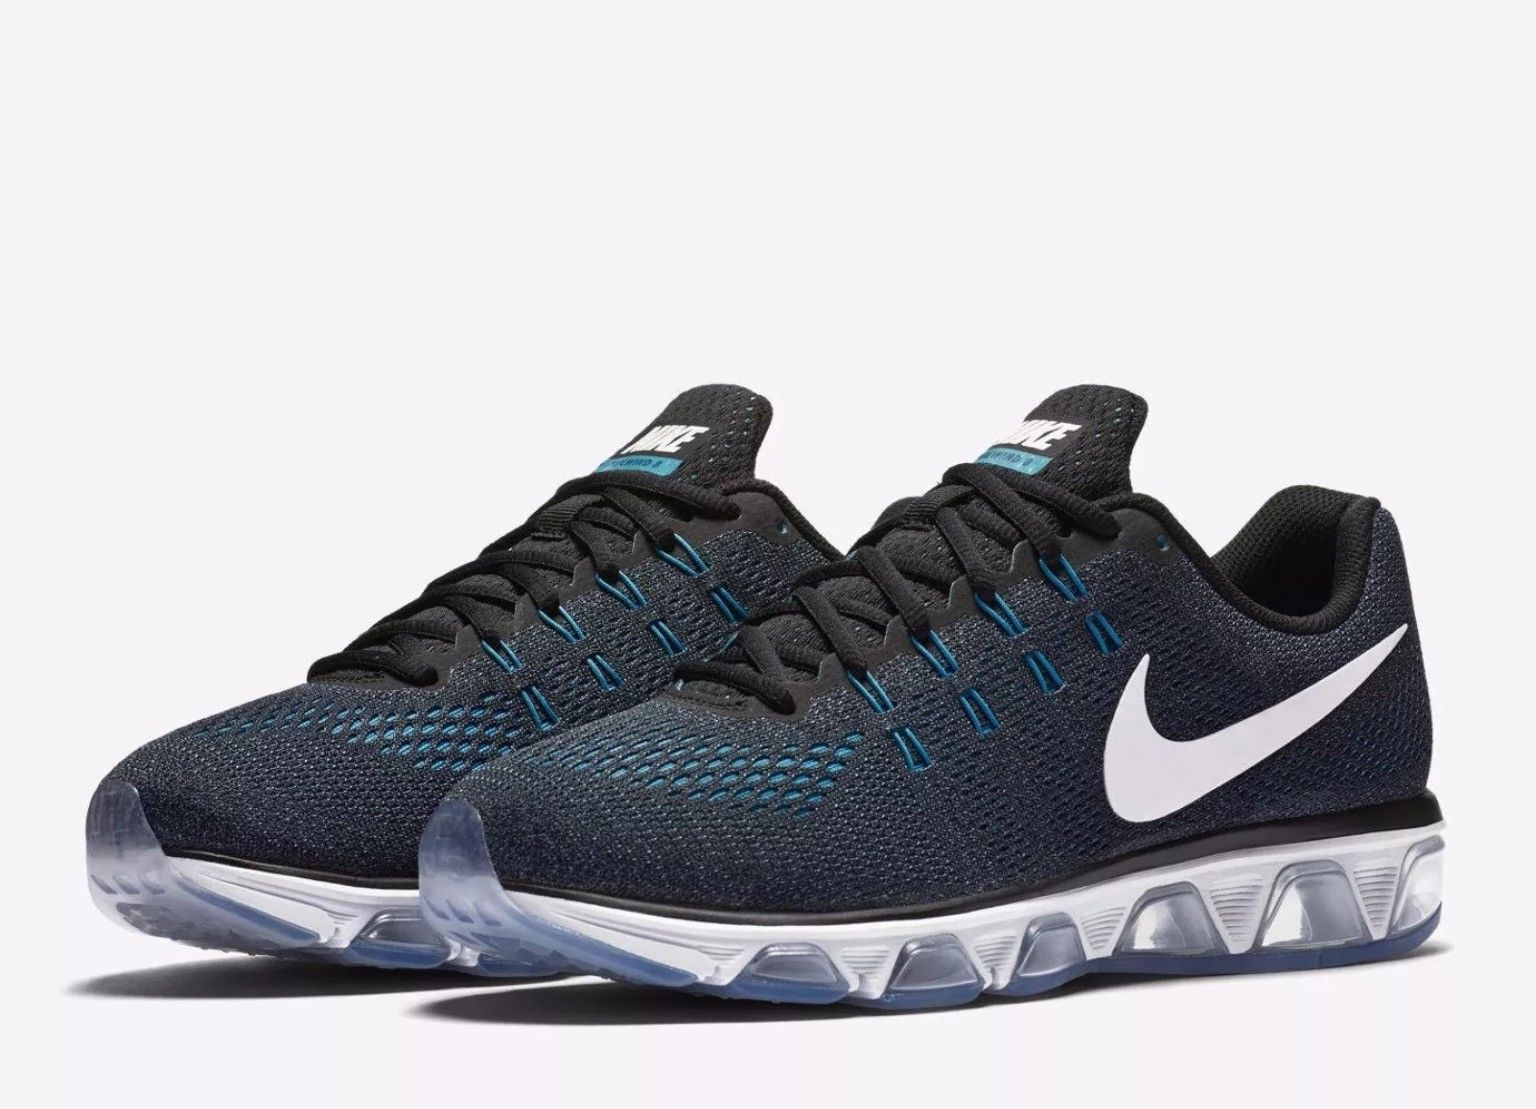 buy online 80ecc b7c7a NIKE AIR MAX TAILWIND 8 BLACK   WHITE-OCEAN FOG (805941-005) MEN SIZES